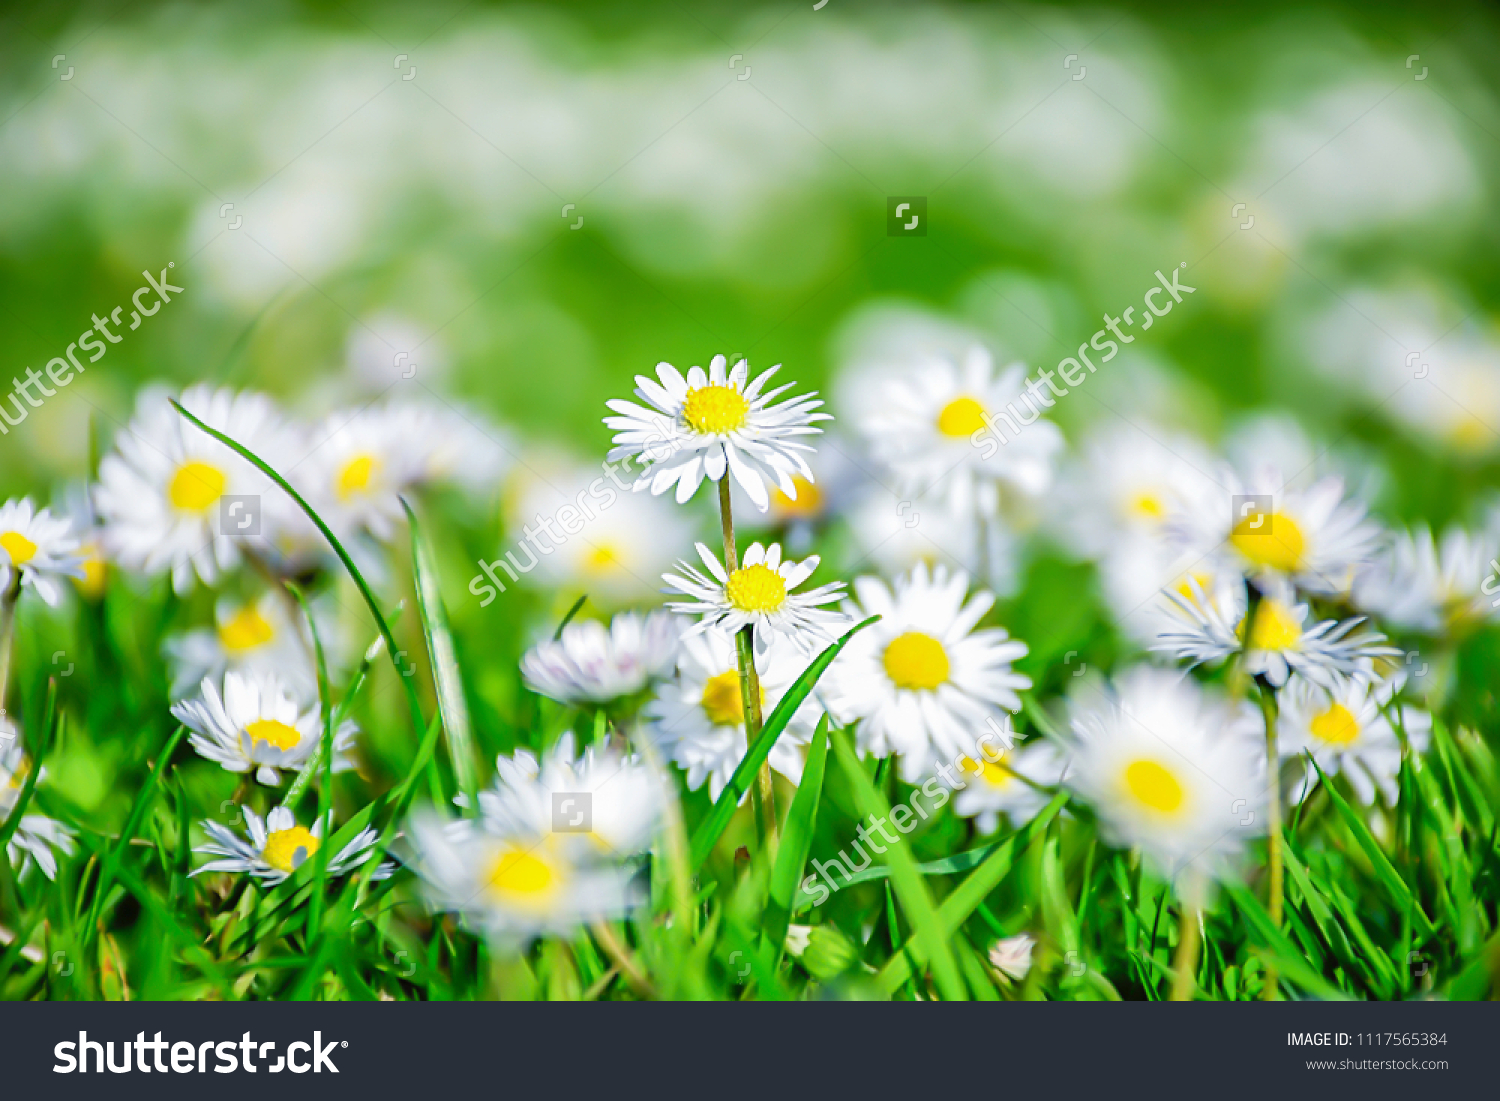 Daisy Flowers Growing On Field Spring Blurred Stock Photo Edit Now